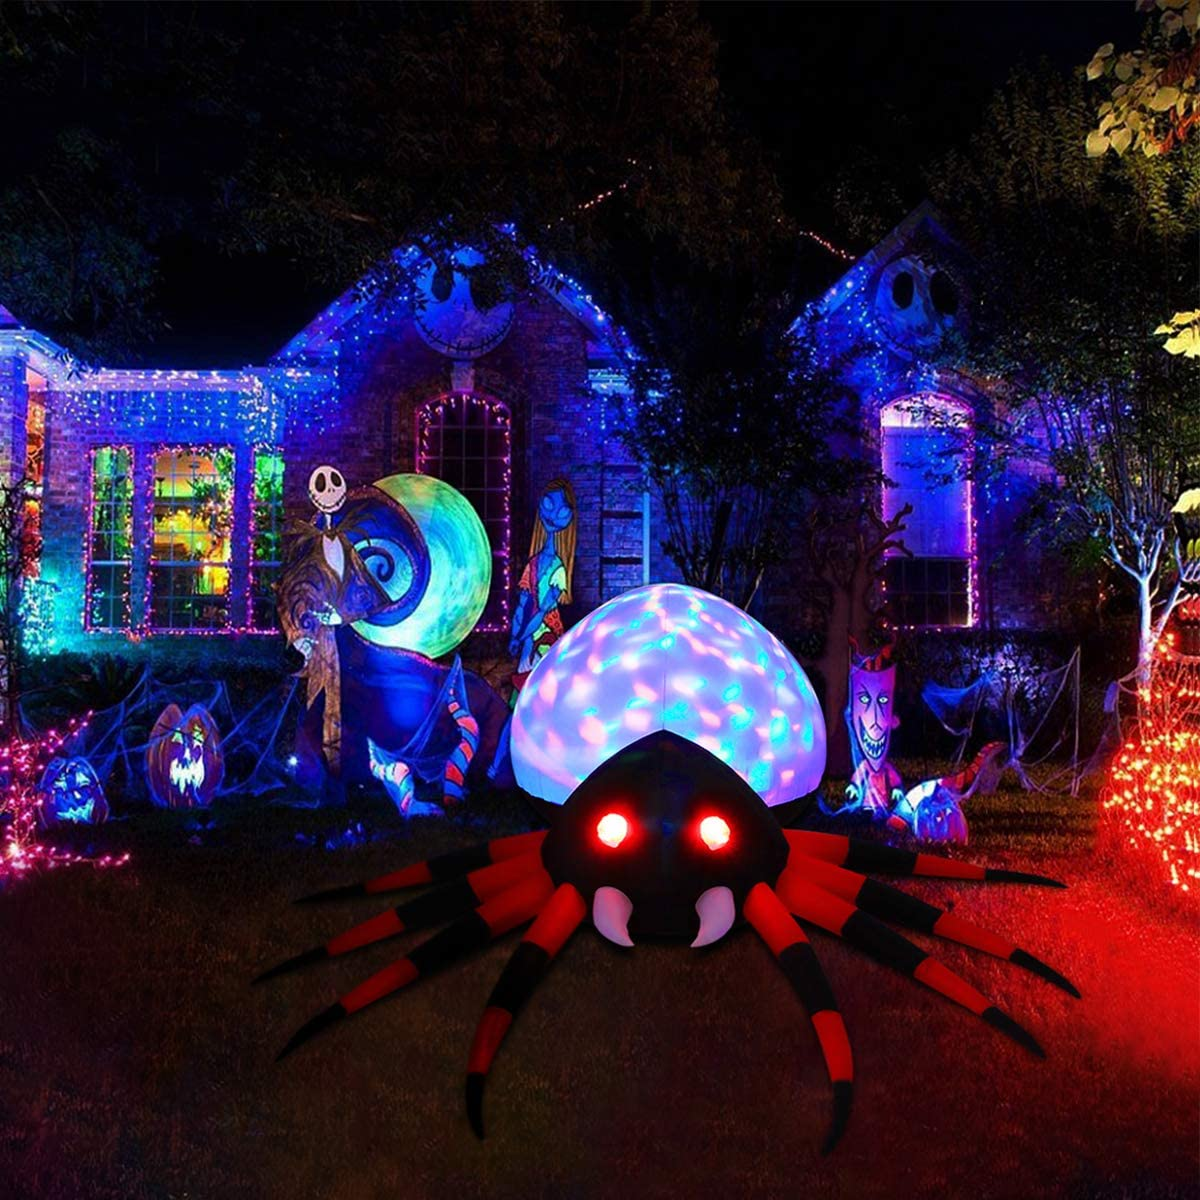 Halloween Inflatable Spider with Colorful LED Lights for Decoration, Lighted Halloween Decor